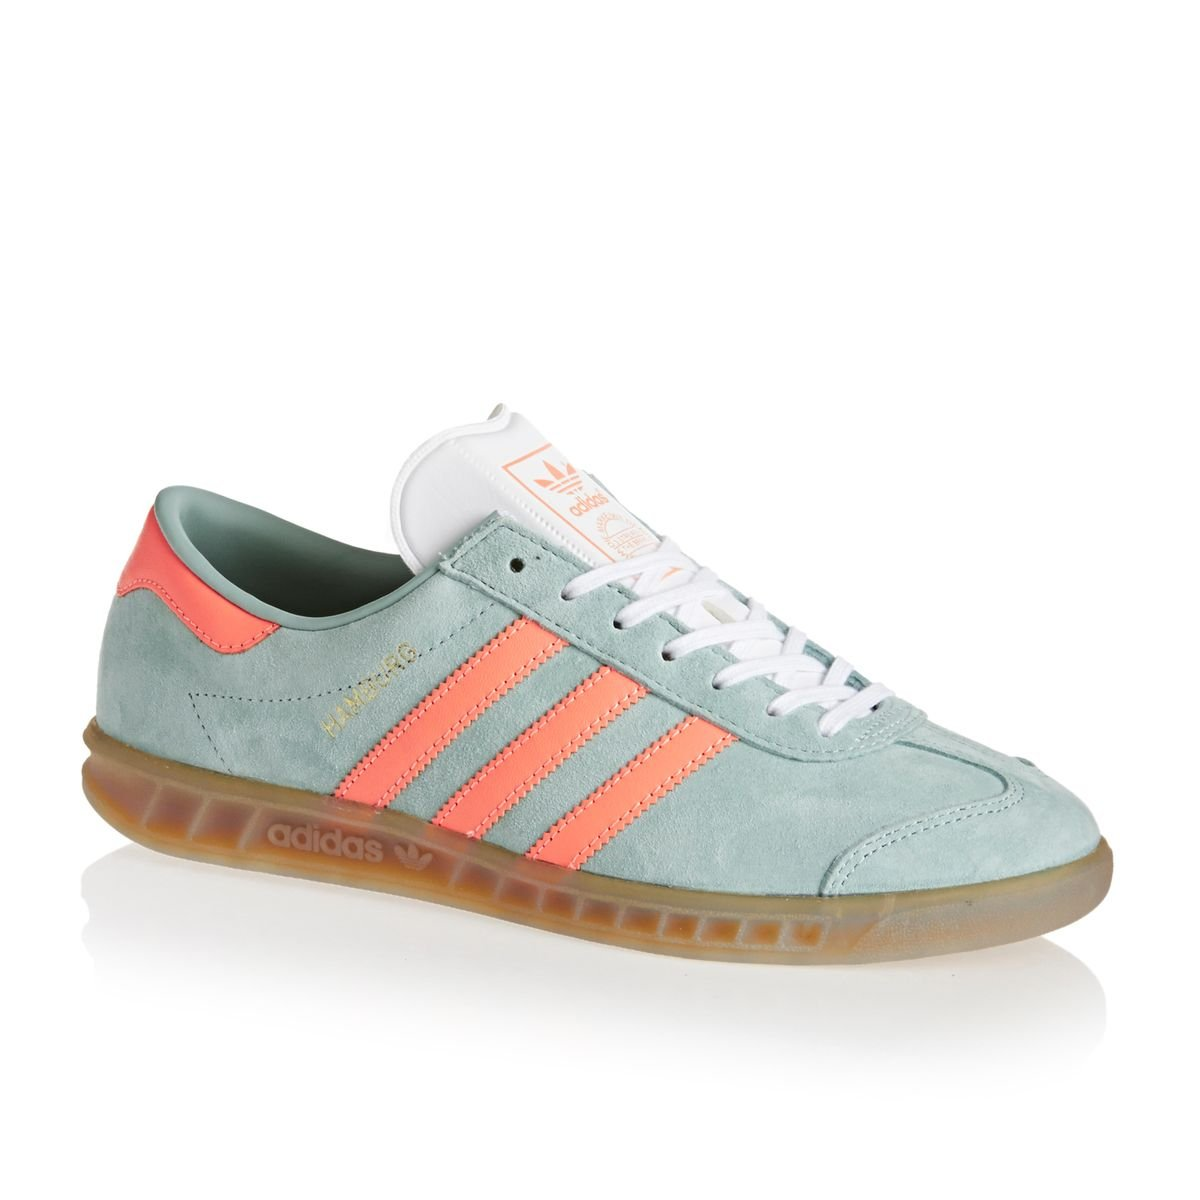 adidas Damen Hamburg bb5111 Trainer Einheitsgrouml;szlig;e  Size UK 65|Green/Salmon